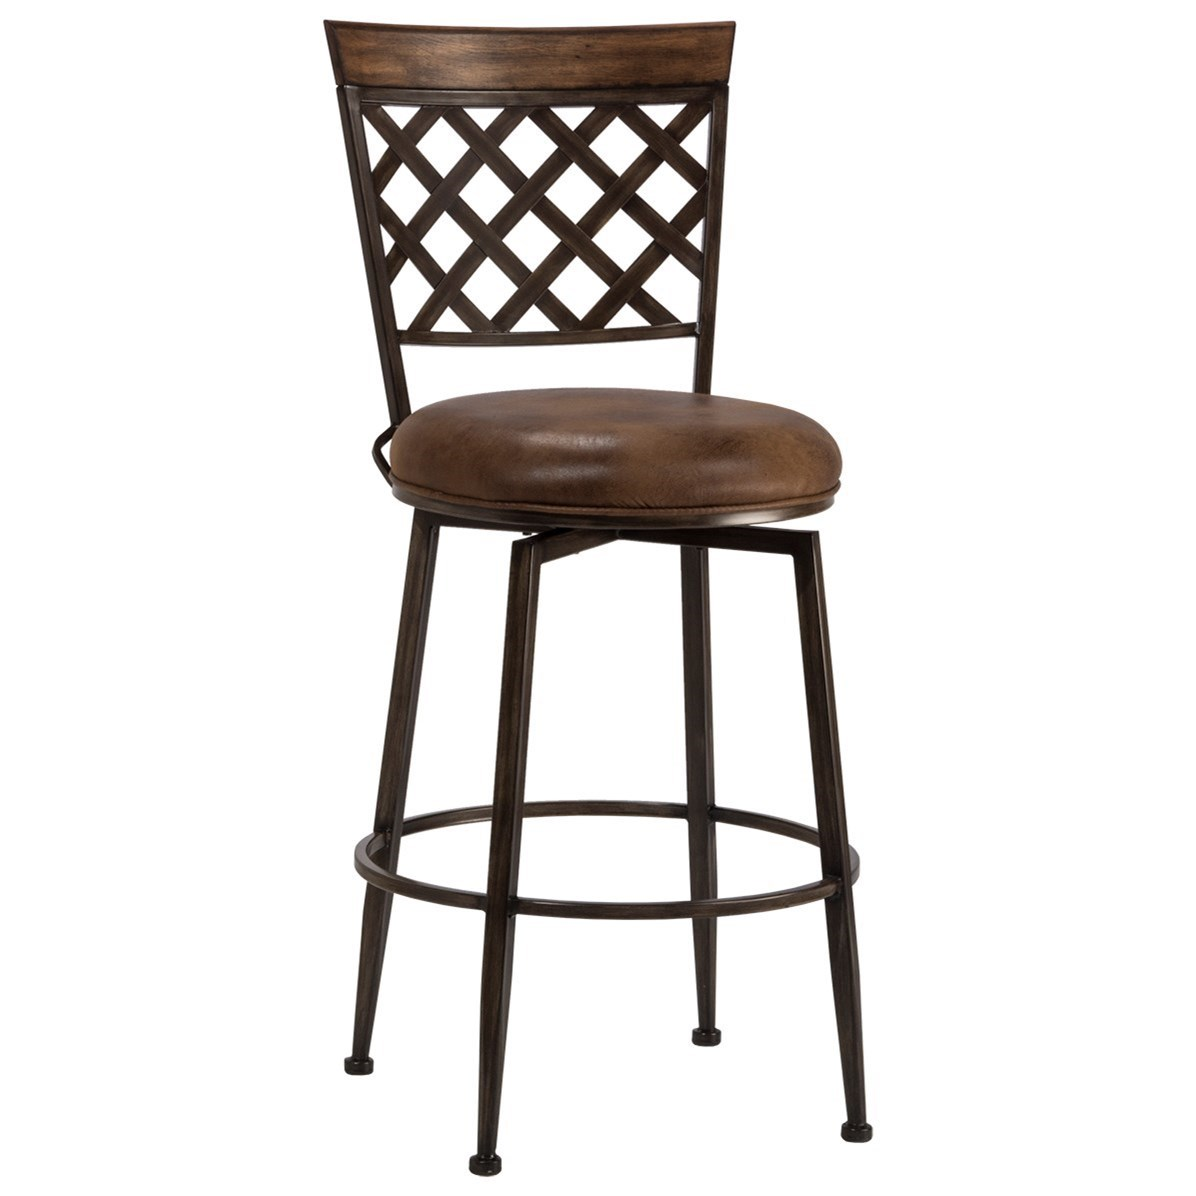 Greenfield Swivel Counter Stool by Hillsdale at Crowley Furniture & Mattress